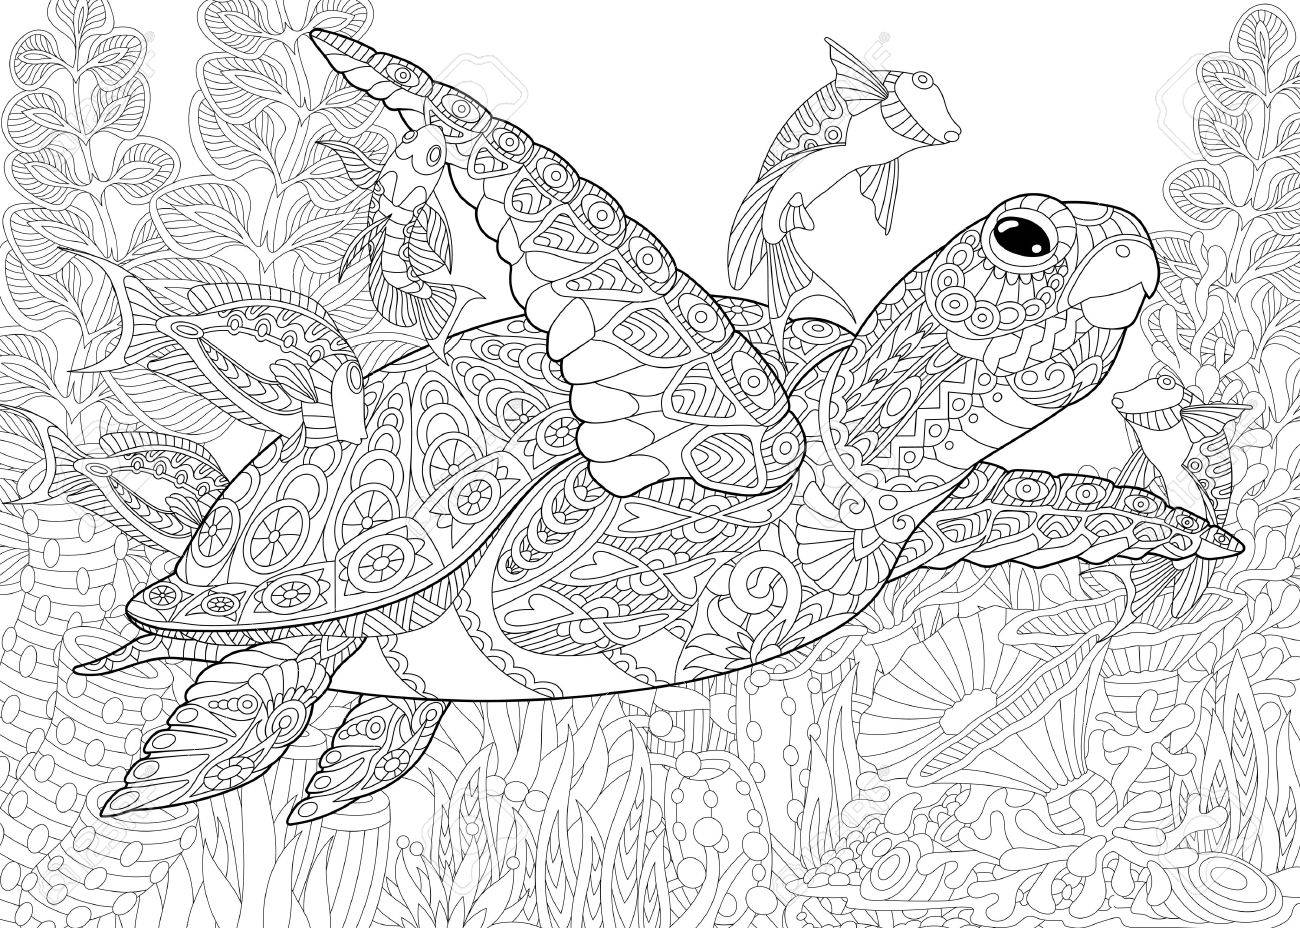 Coloring Book Page With Doodle And Zentangle Elements Stylized Composition Of Turtle Tortoise Tropical Fish Underwater Seaweed Corals